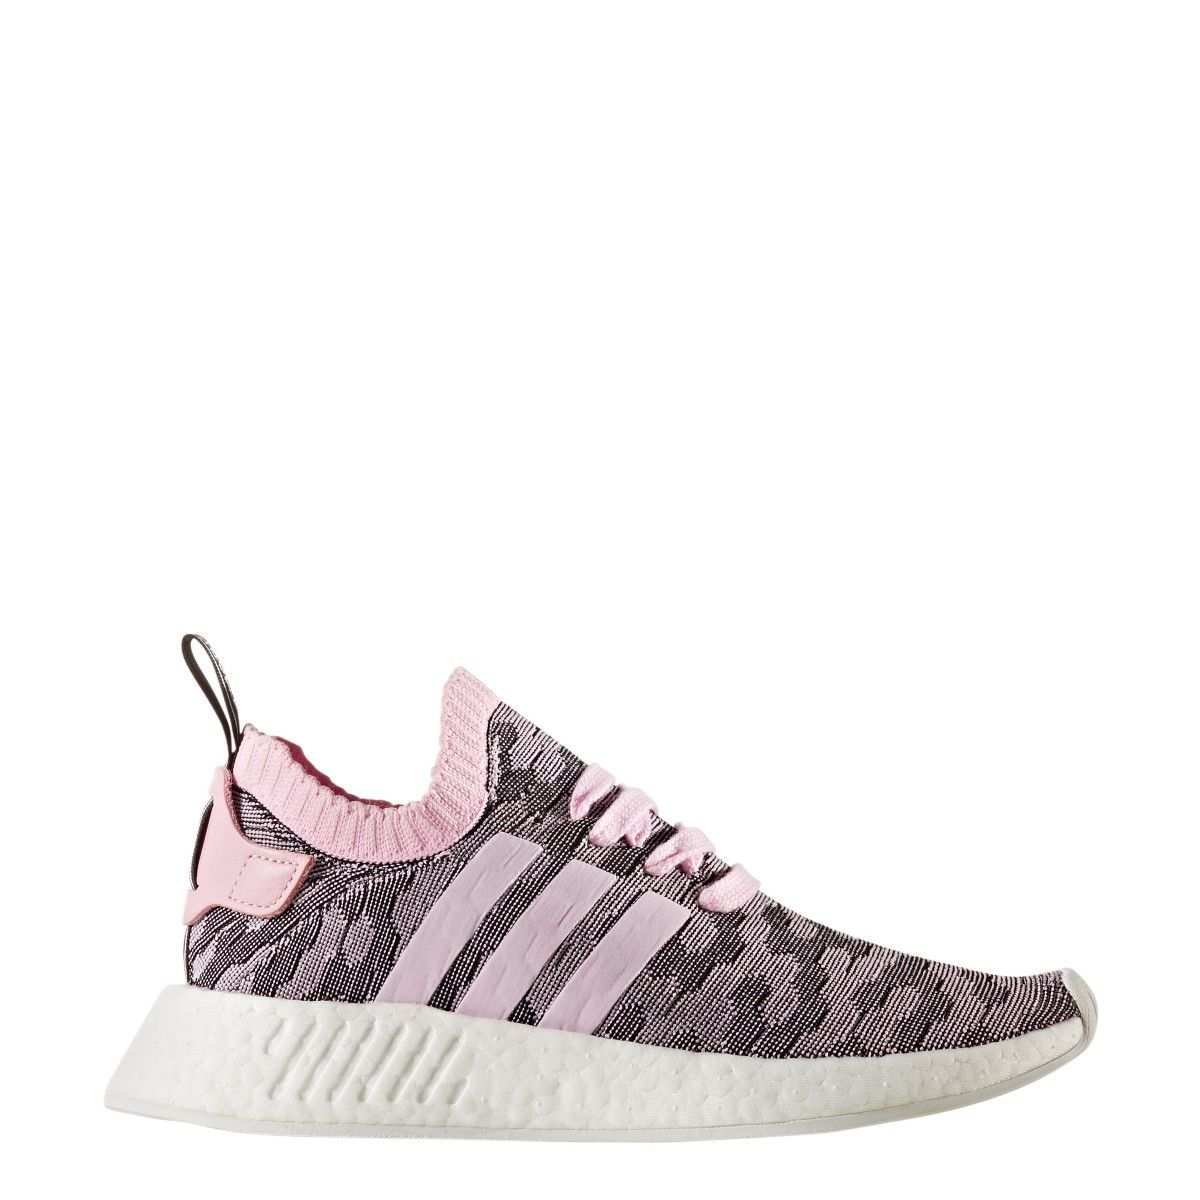 CHANELLE X ROSEGOLD ADIDAS NMD R2 PK WOMENS SNEAKERS  20e1efecc